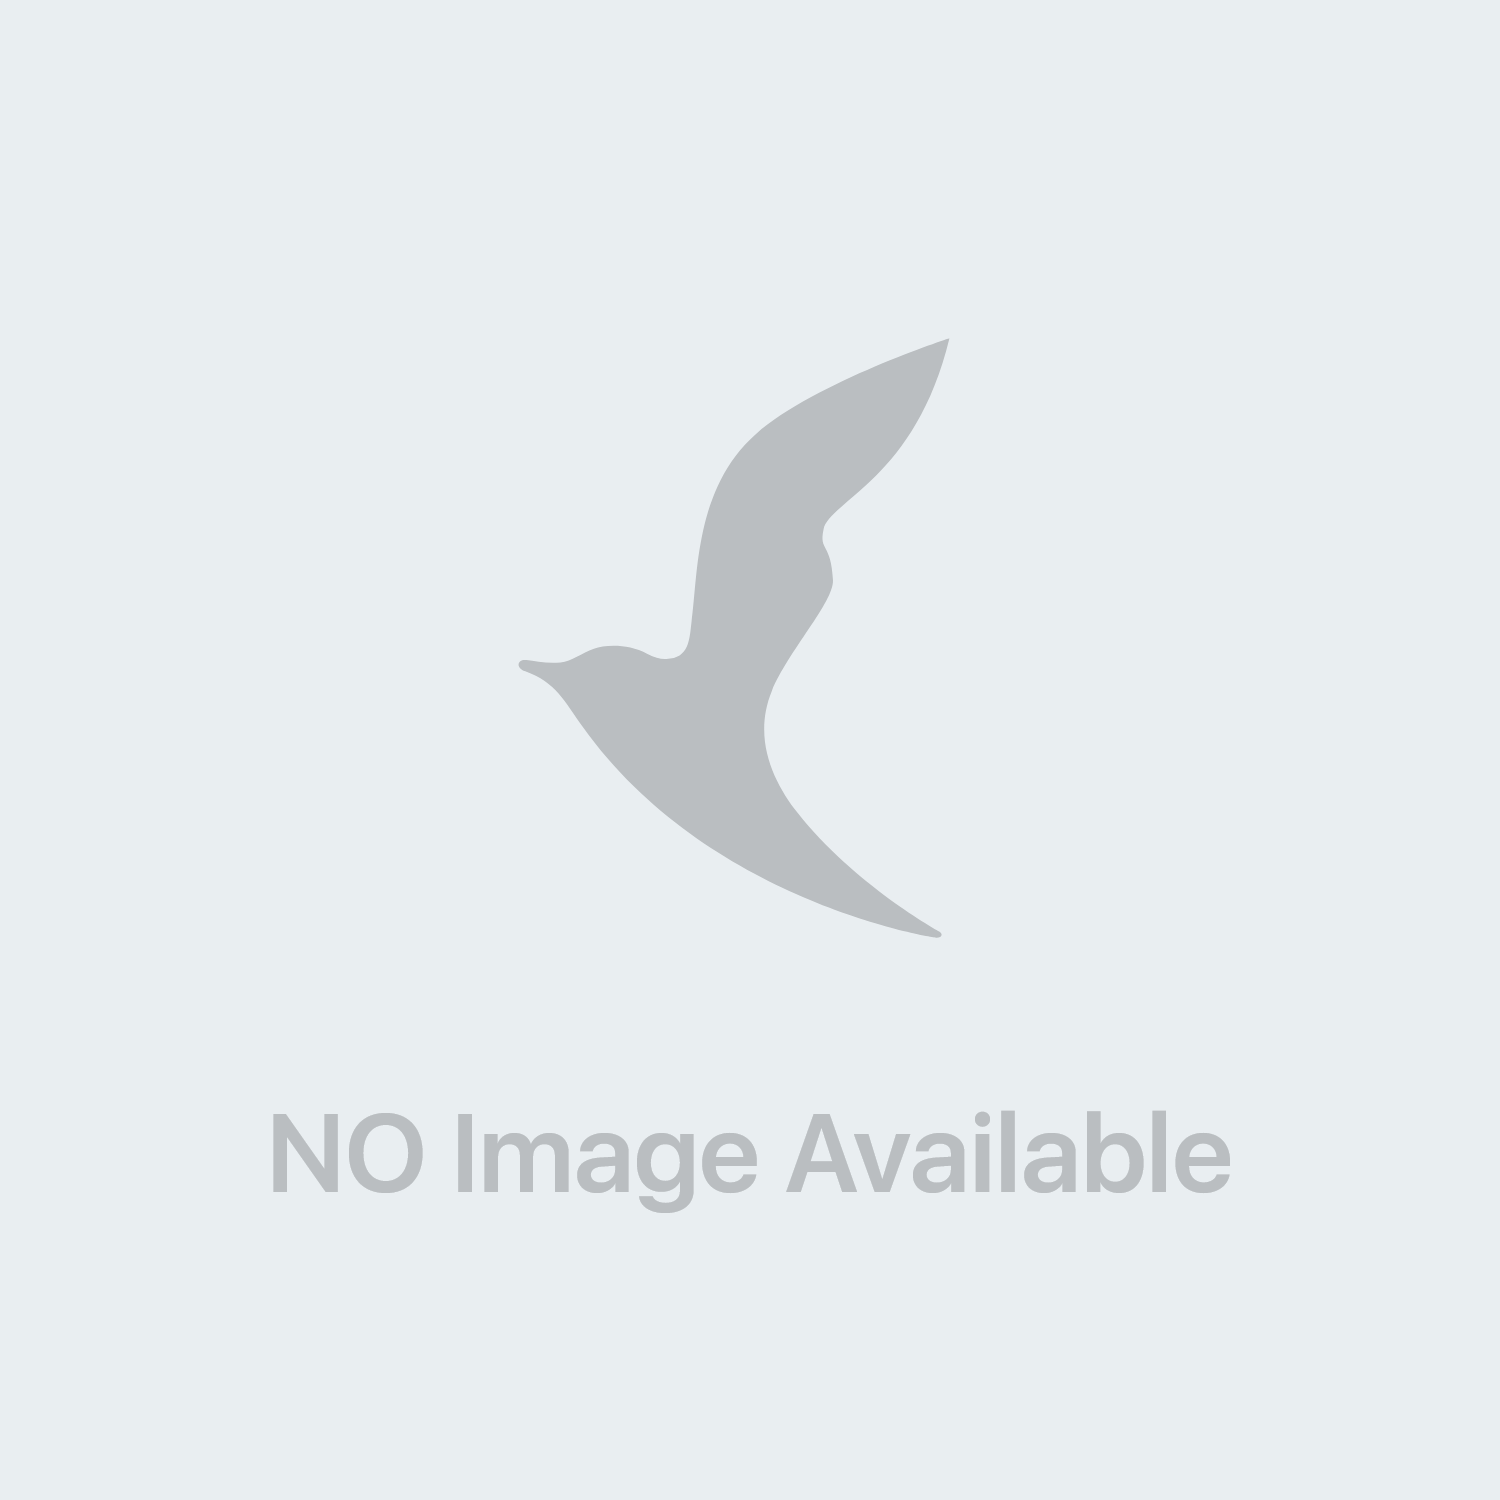 Sebamed Detergente Liquido pH 5.5 200 ml